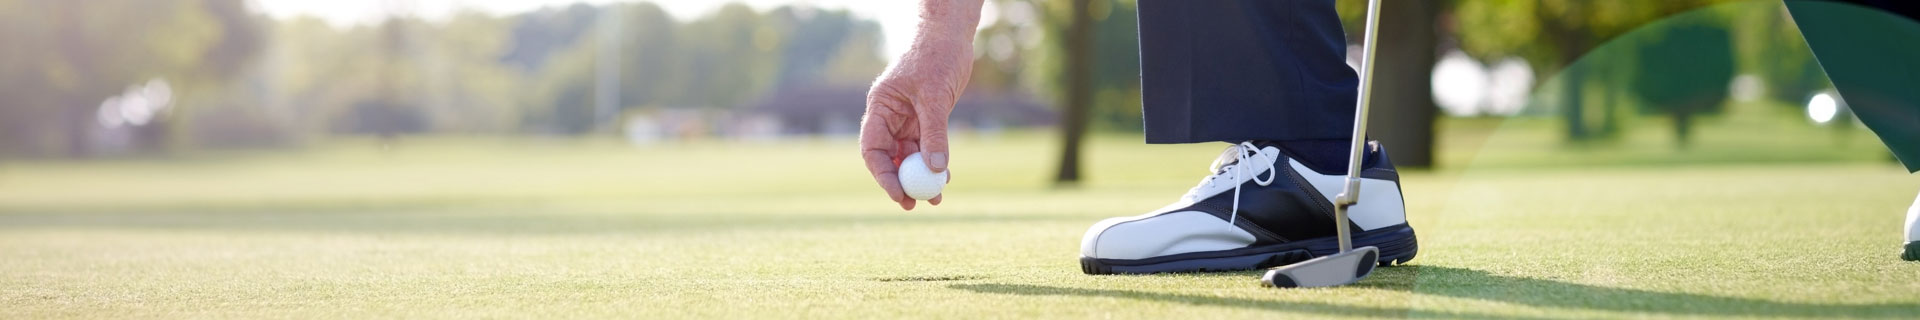 man places golf ball on the green to putt